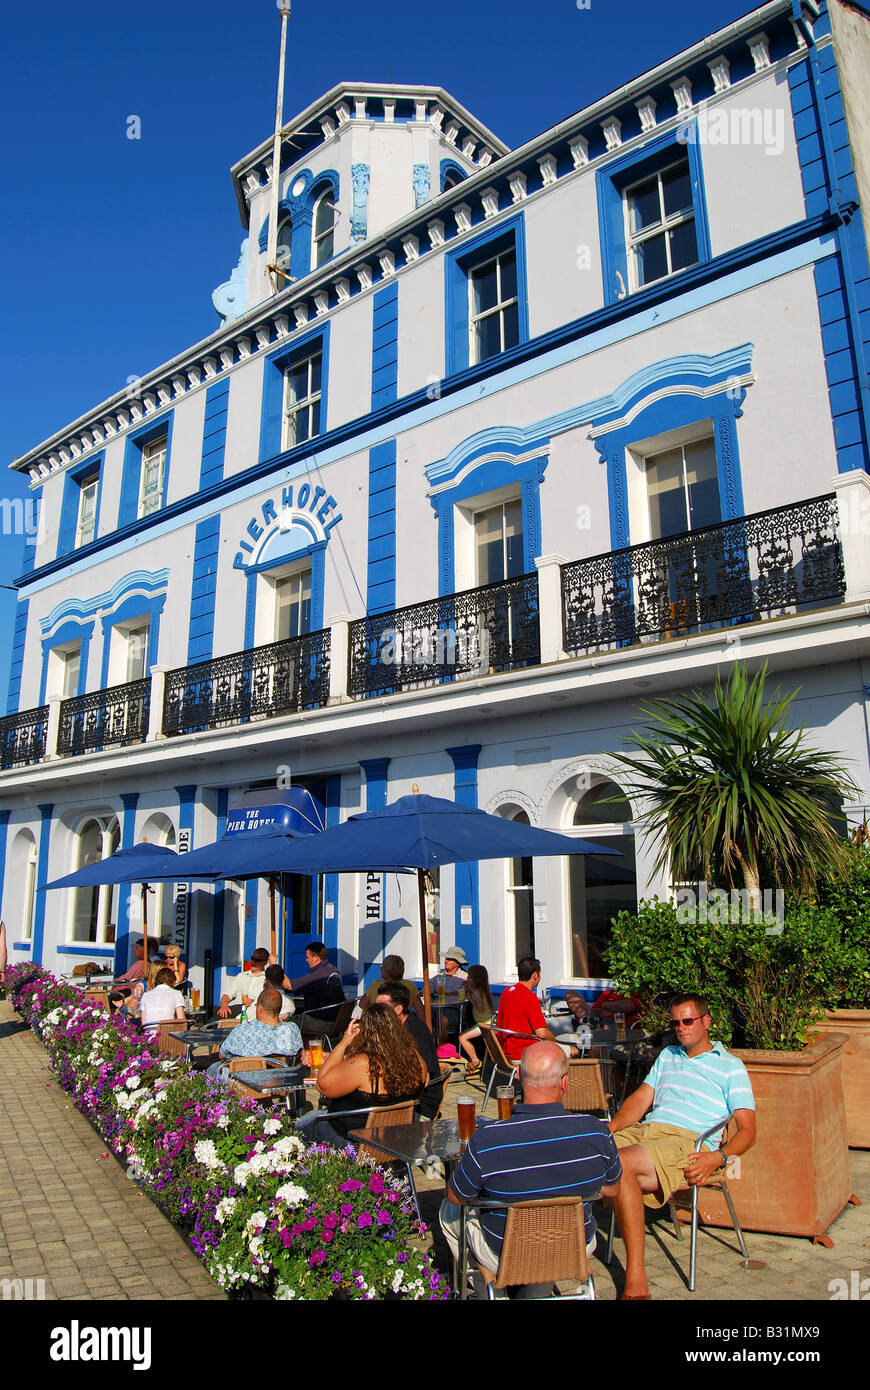 The Pier Hotel, The Quay, Harwich, Tendring District, Essex, England, United Kingdom - Stock Image